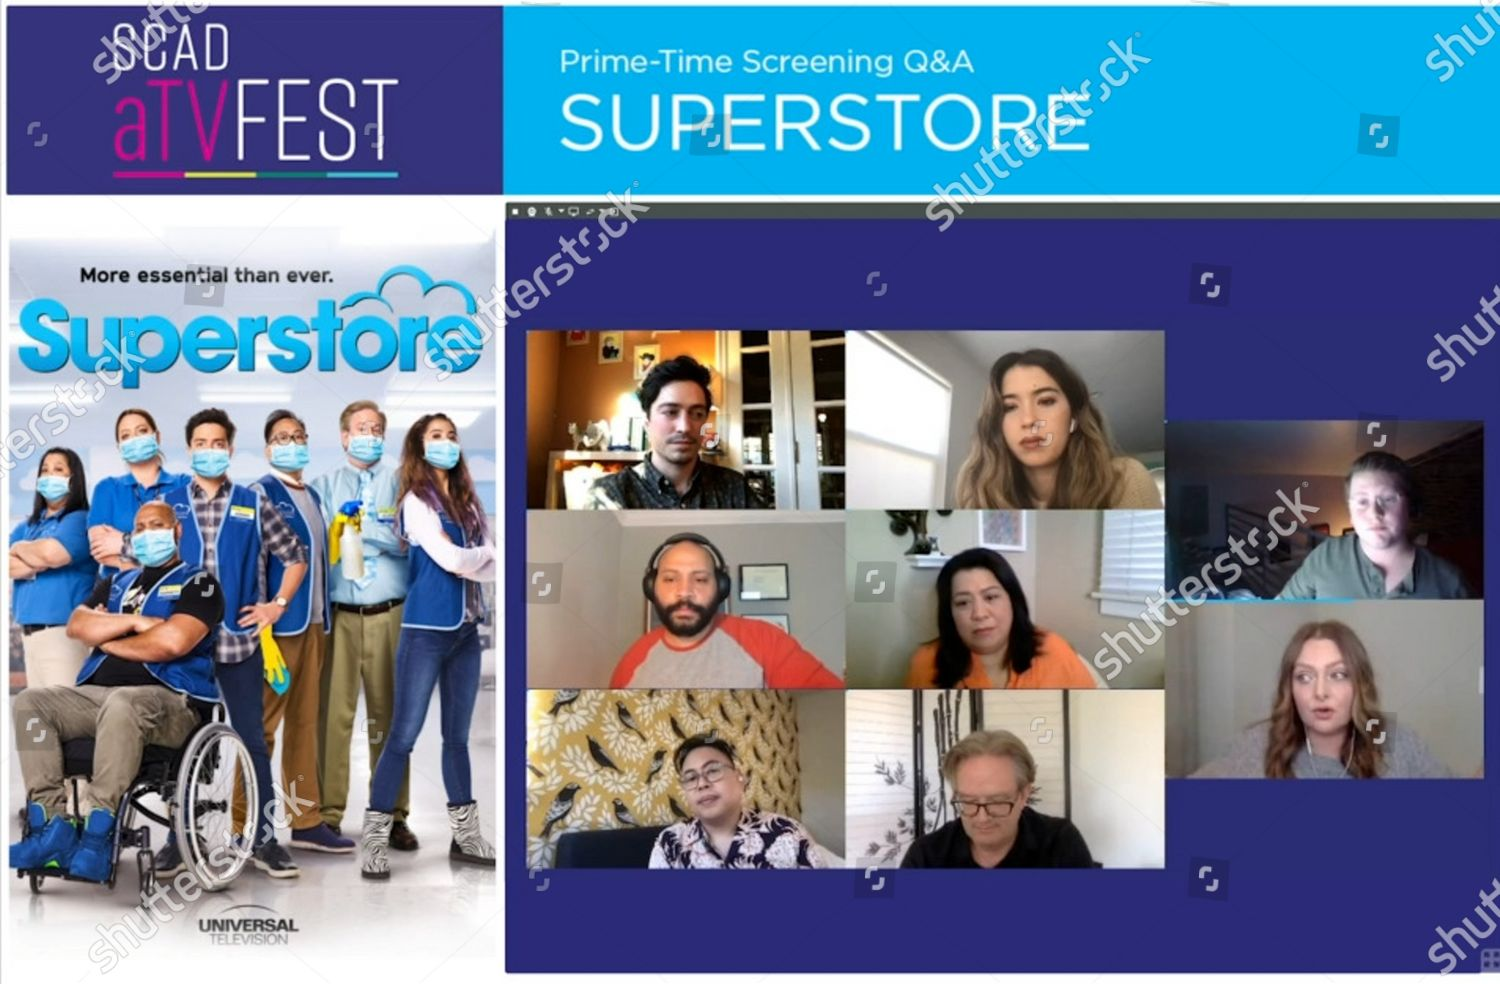 Stock photo of SCAD aTVFest - 'Superstore' panel, USA - 04 Feb 2021